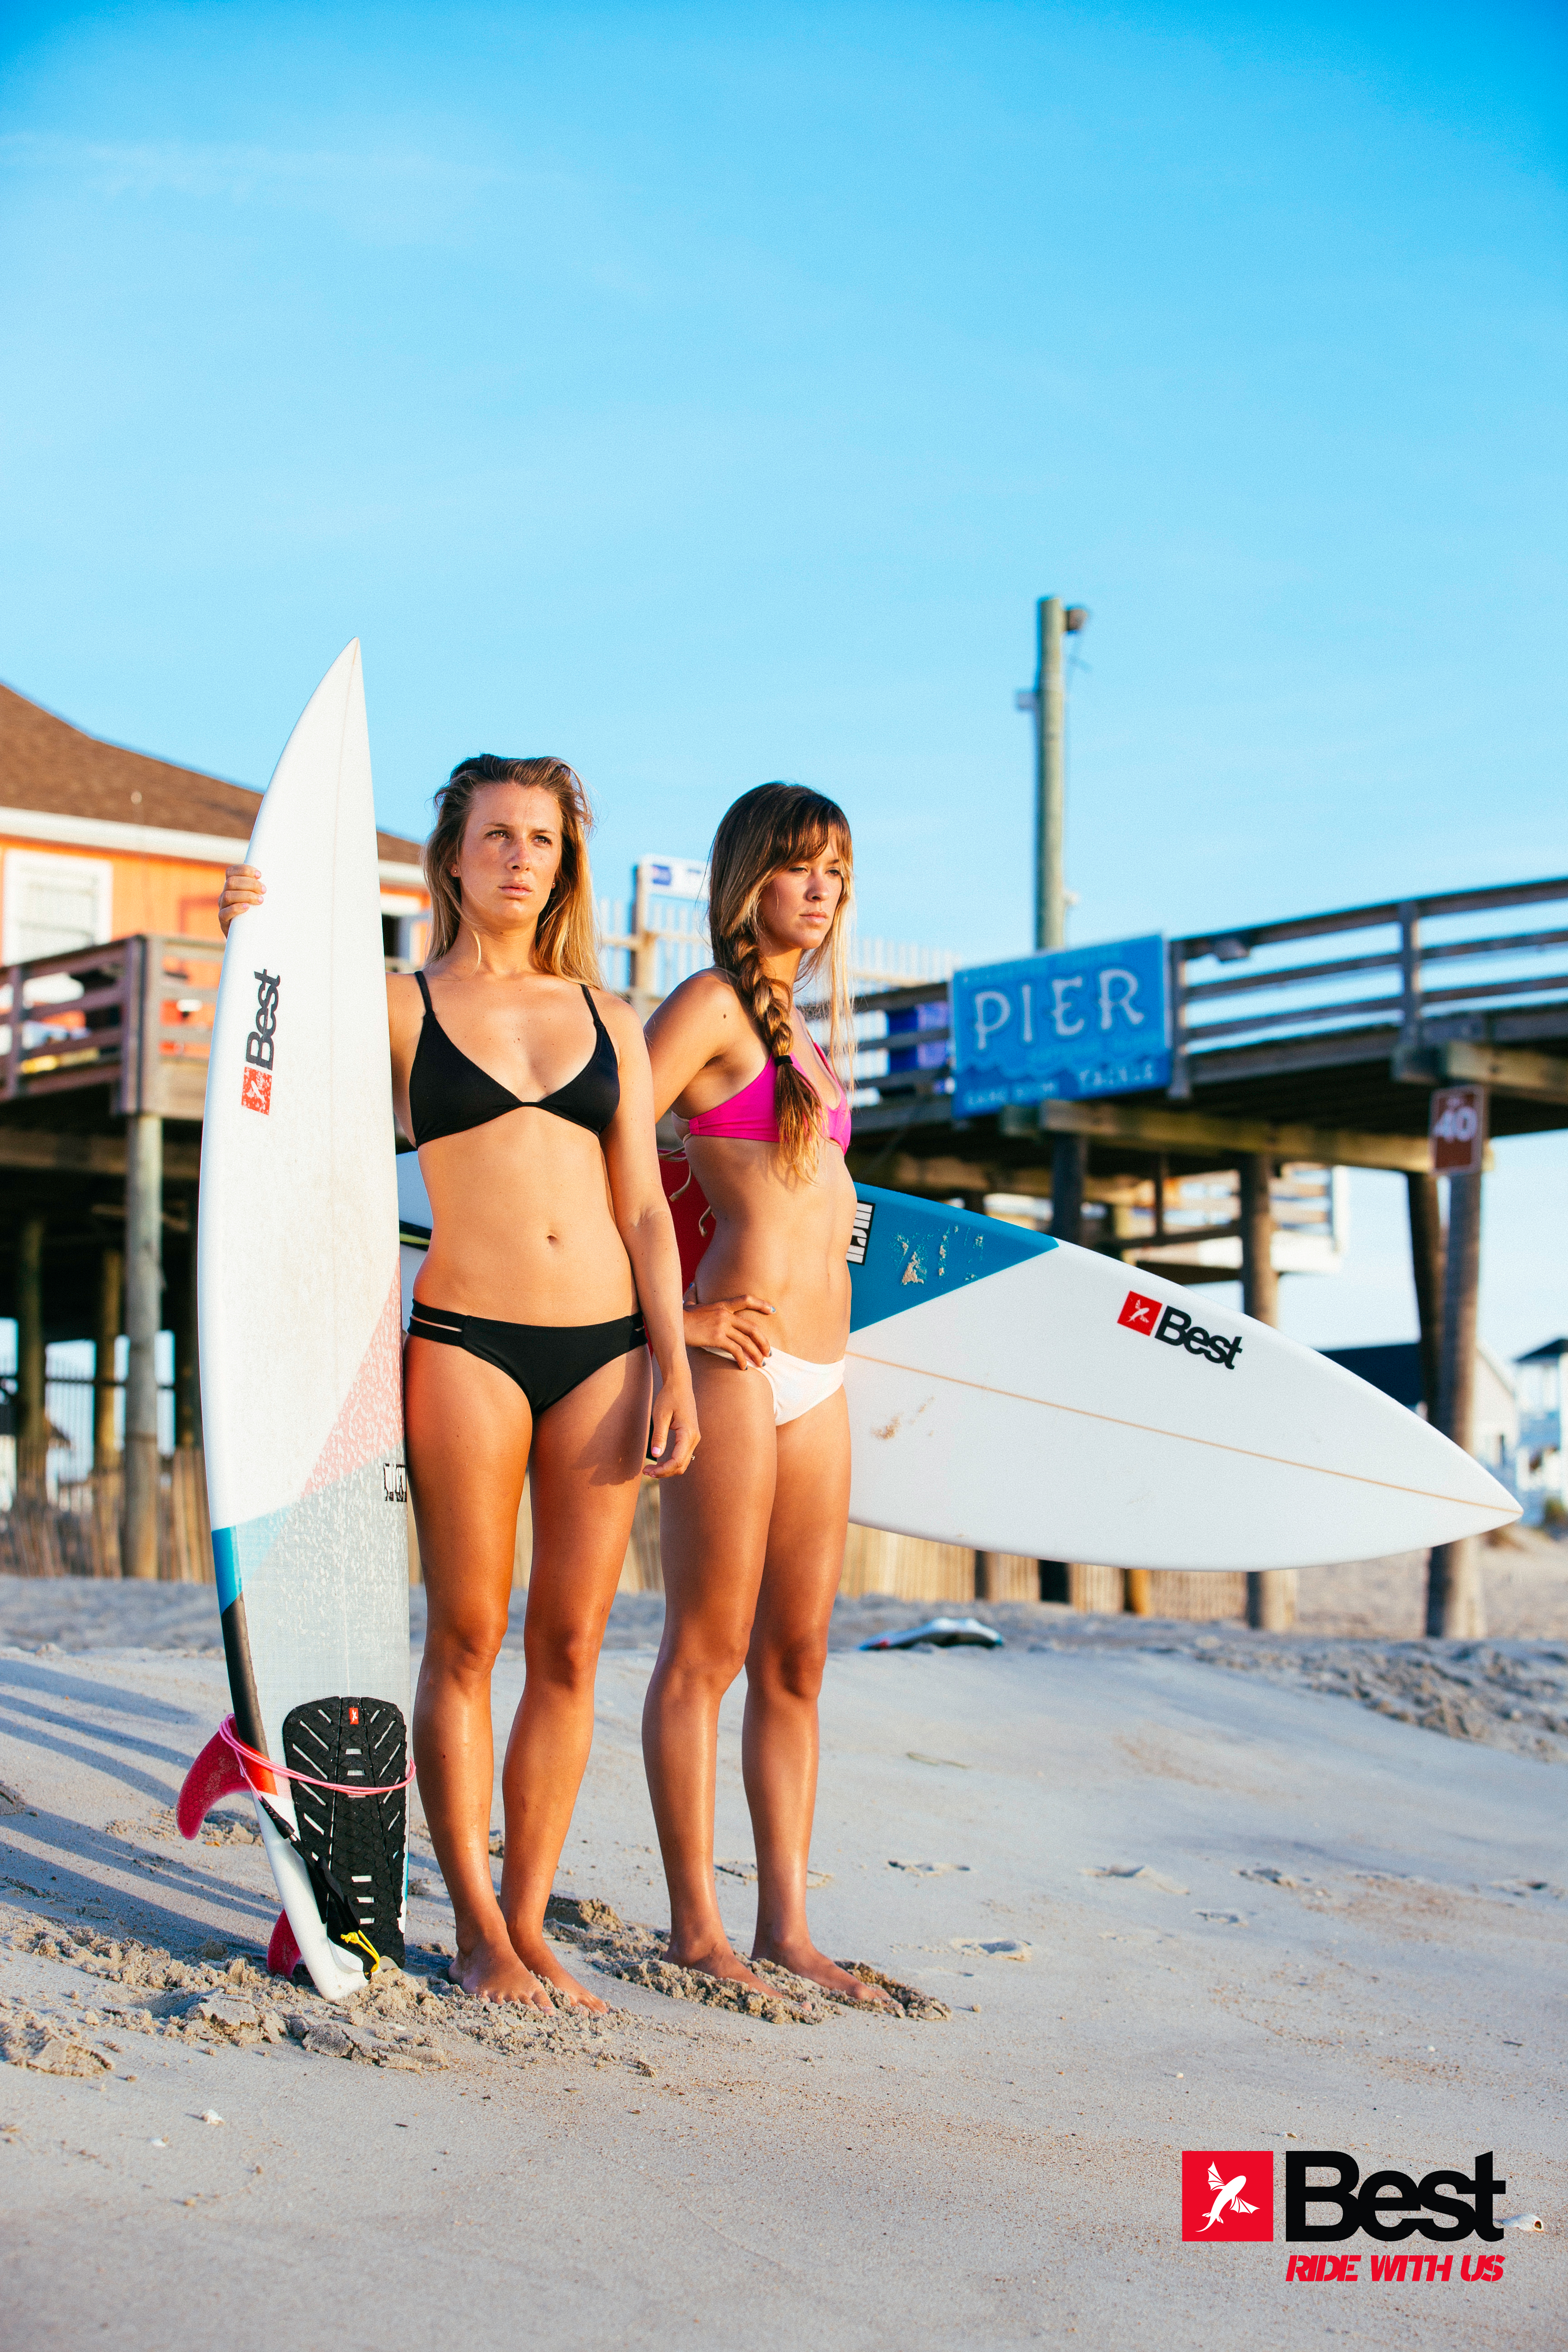 kitesurf wallpaper image - Two Best Kiteboarding kitechicks in bikini with surfboards looking to take a ride - in resolution: Original 3456 X 5184